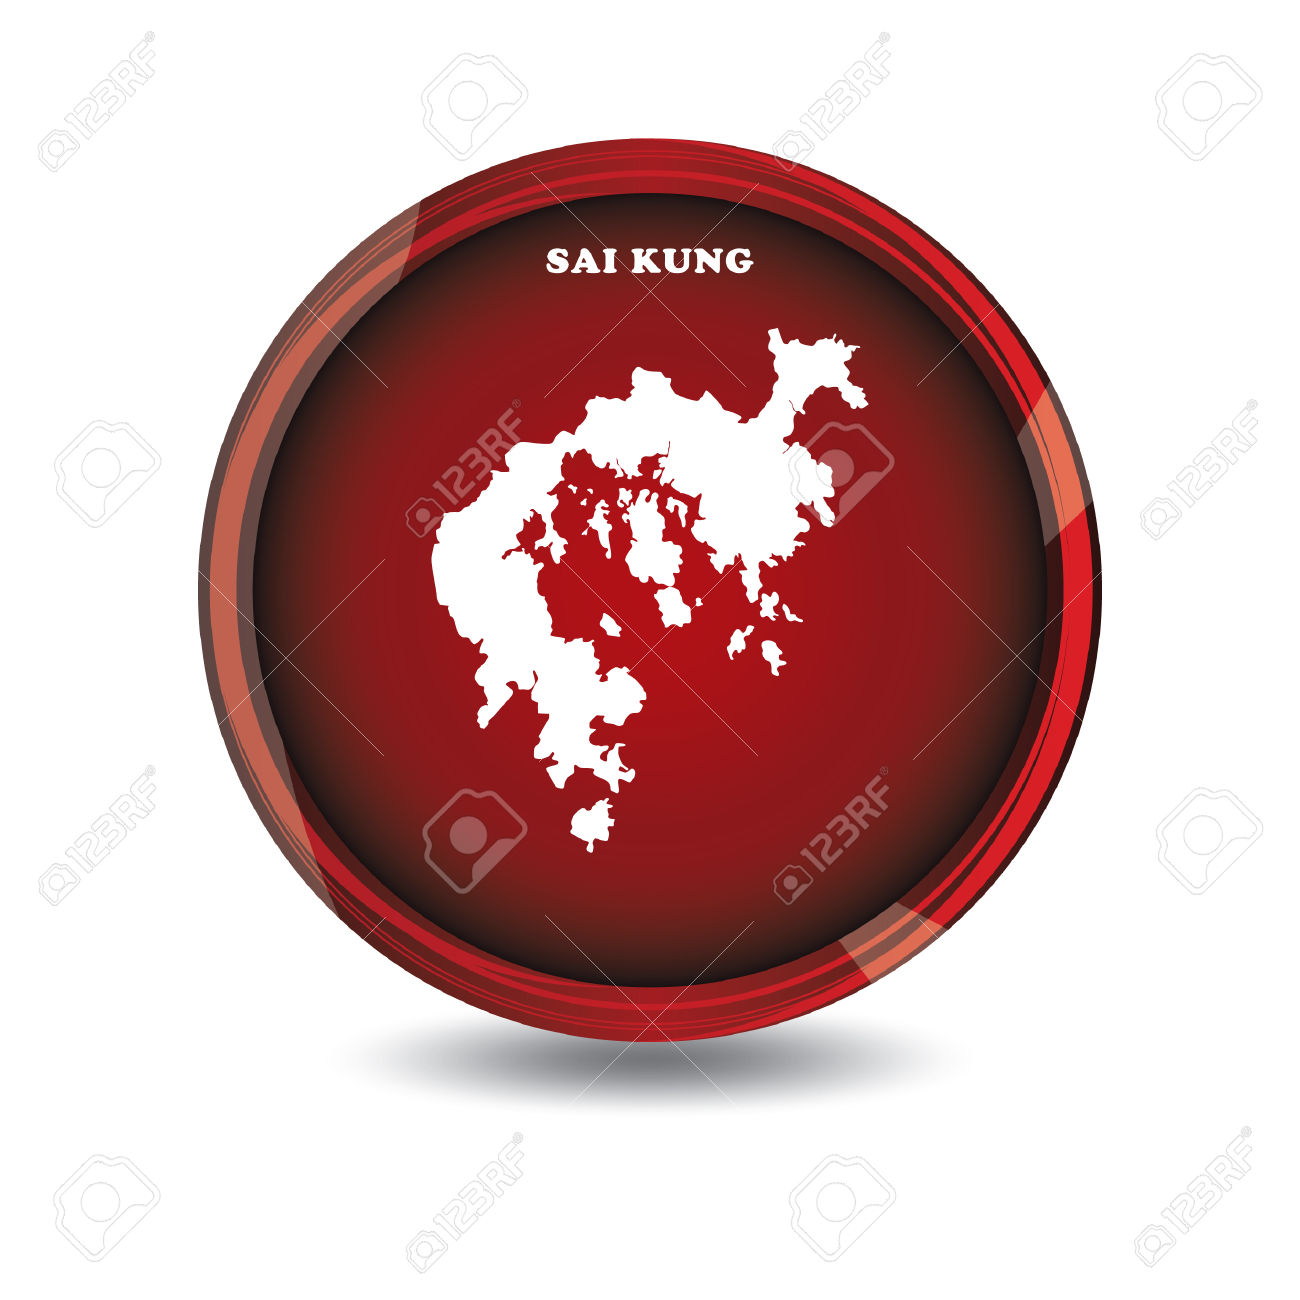 Sai Kung Map Royalty Free Cliparts, Vectors, And Stock.